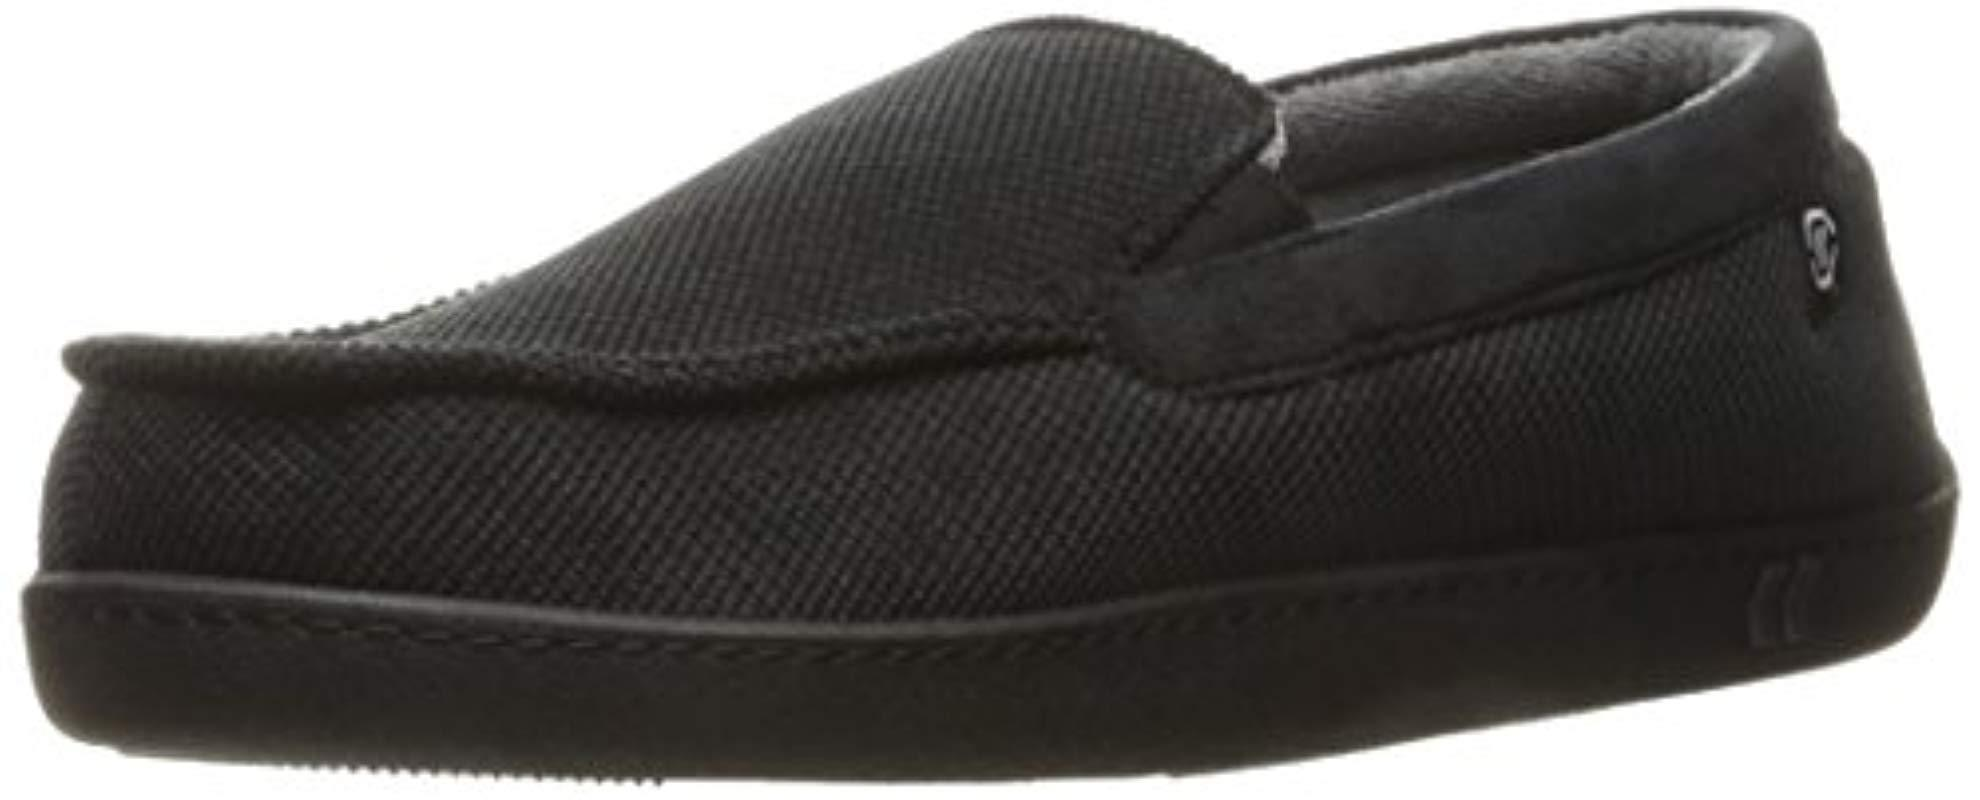 7b3131d799 Lyst - Isotoner Diamond Corduroy Moccasin Slipper With Cooling ...